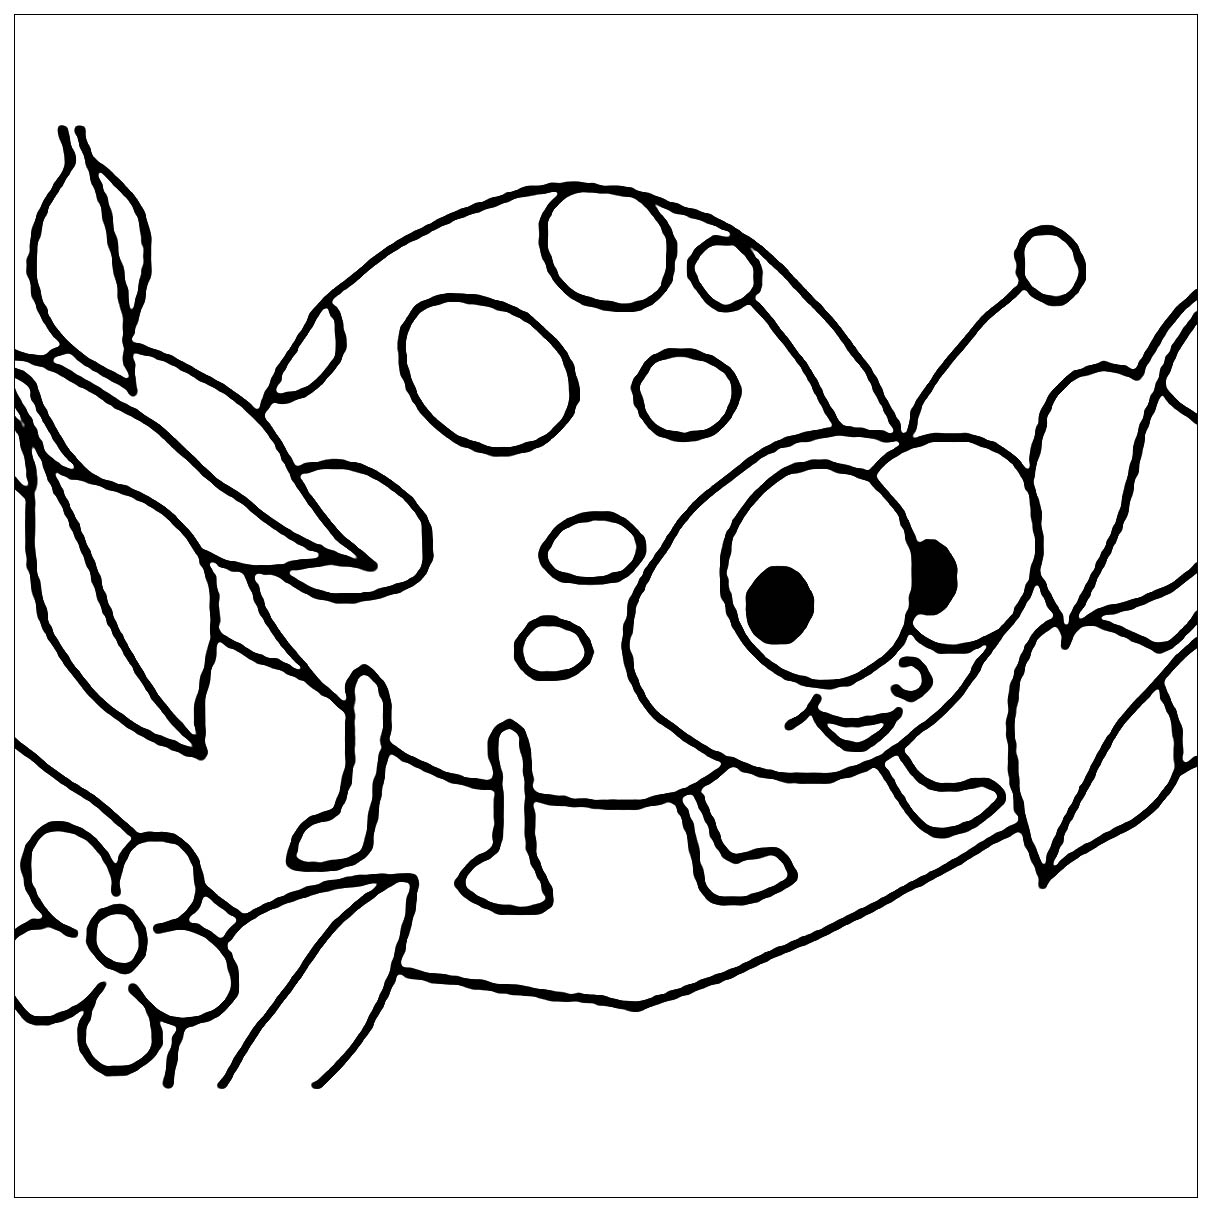 bug pictures to color printable bug coloring pages for kids to color bug pictures